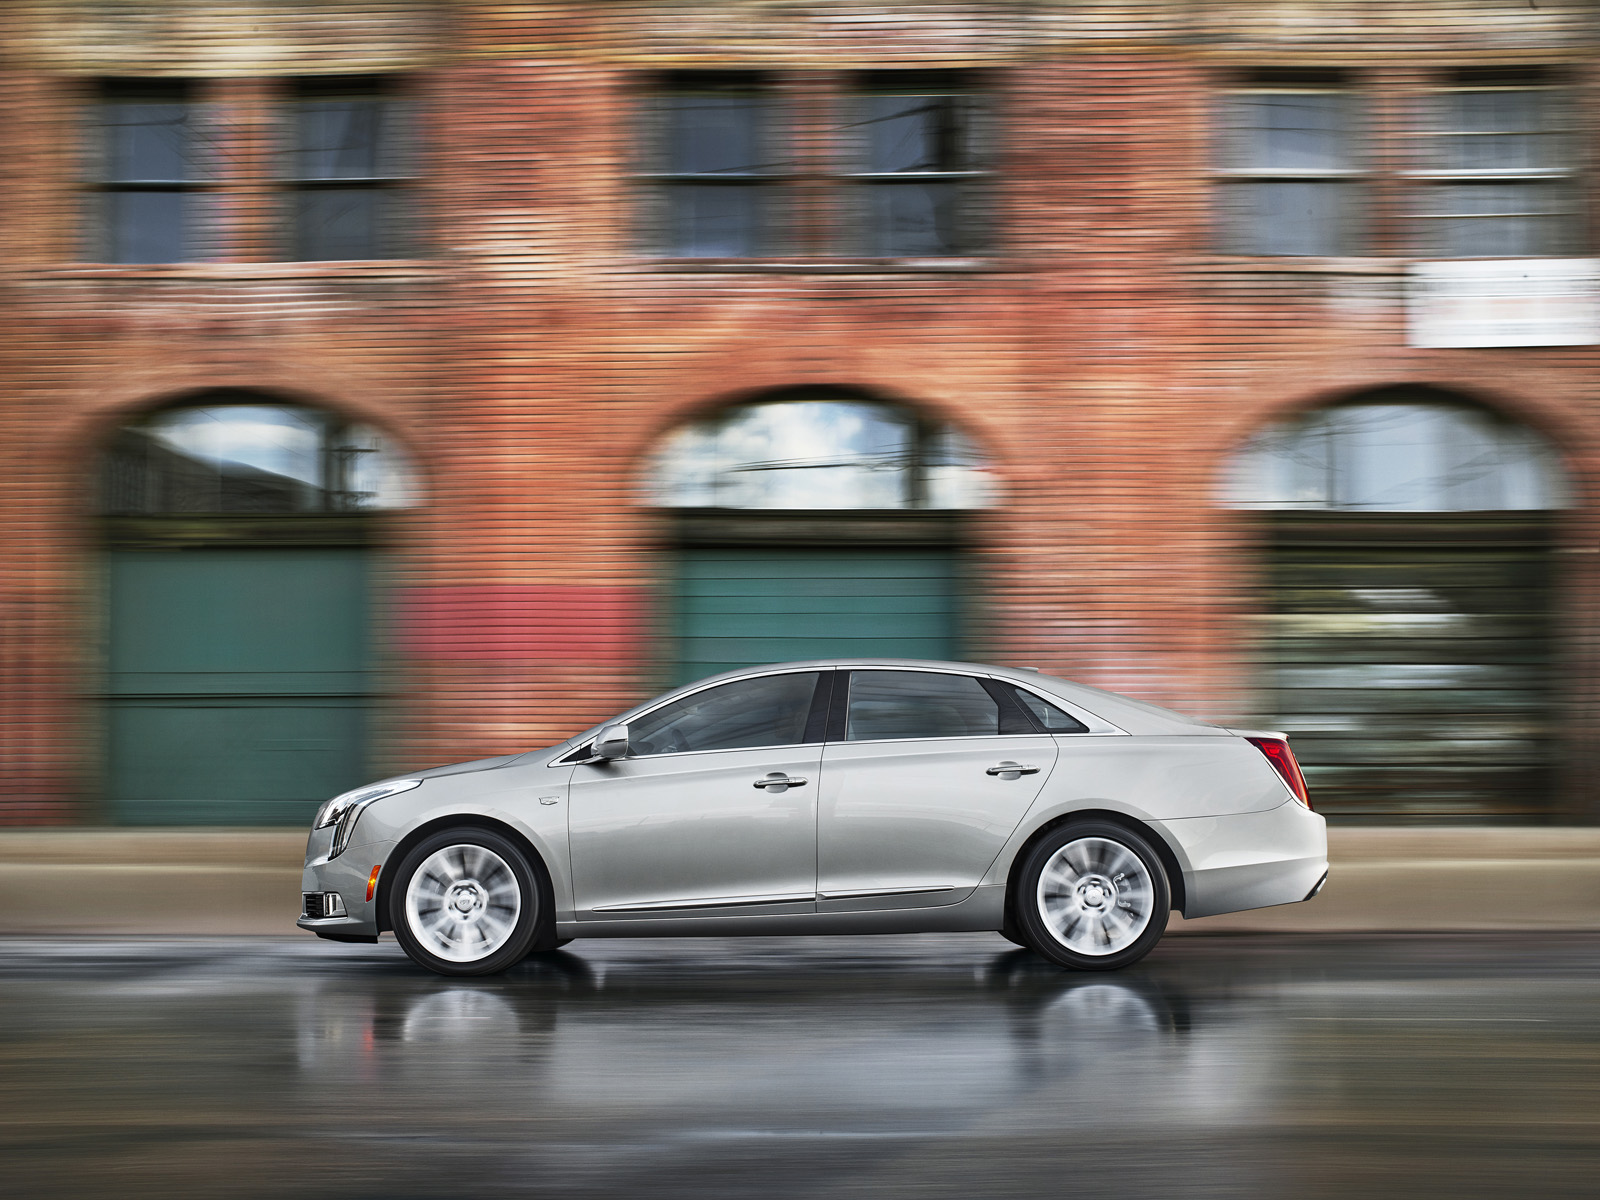 The 2018 Cadillac XTS luxury sedan is elevated with the new gene